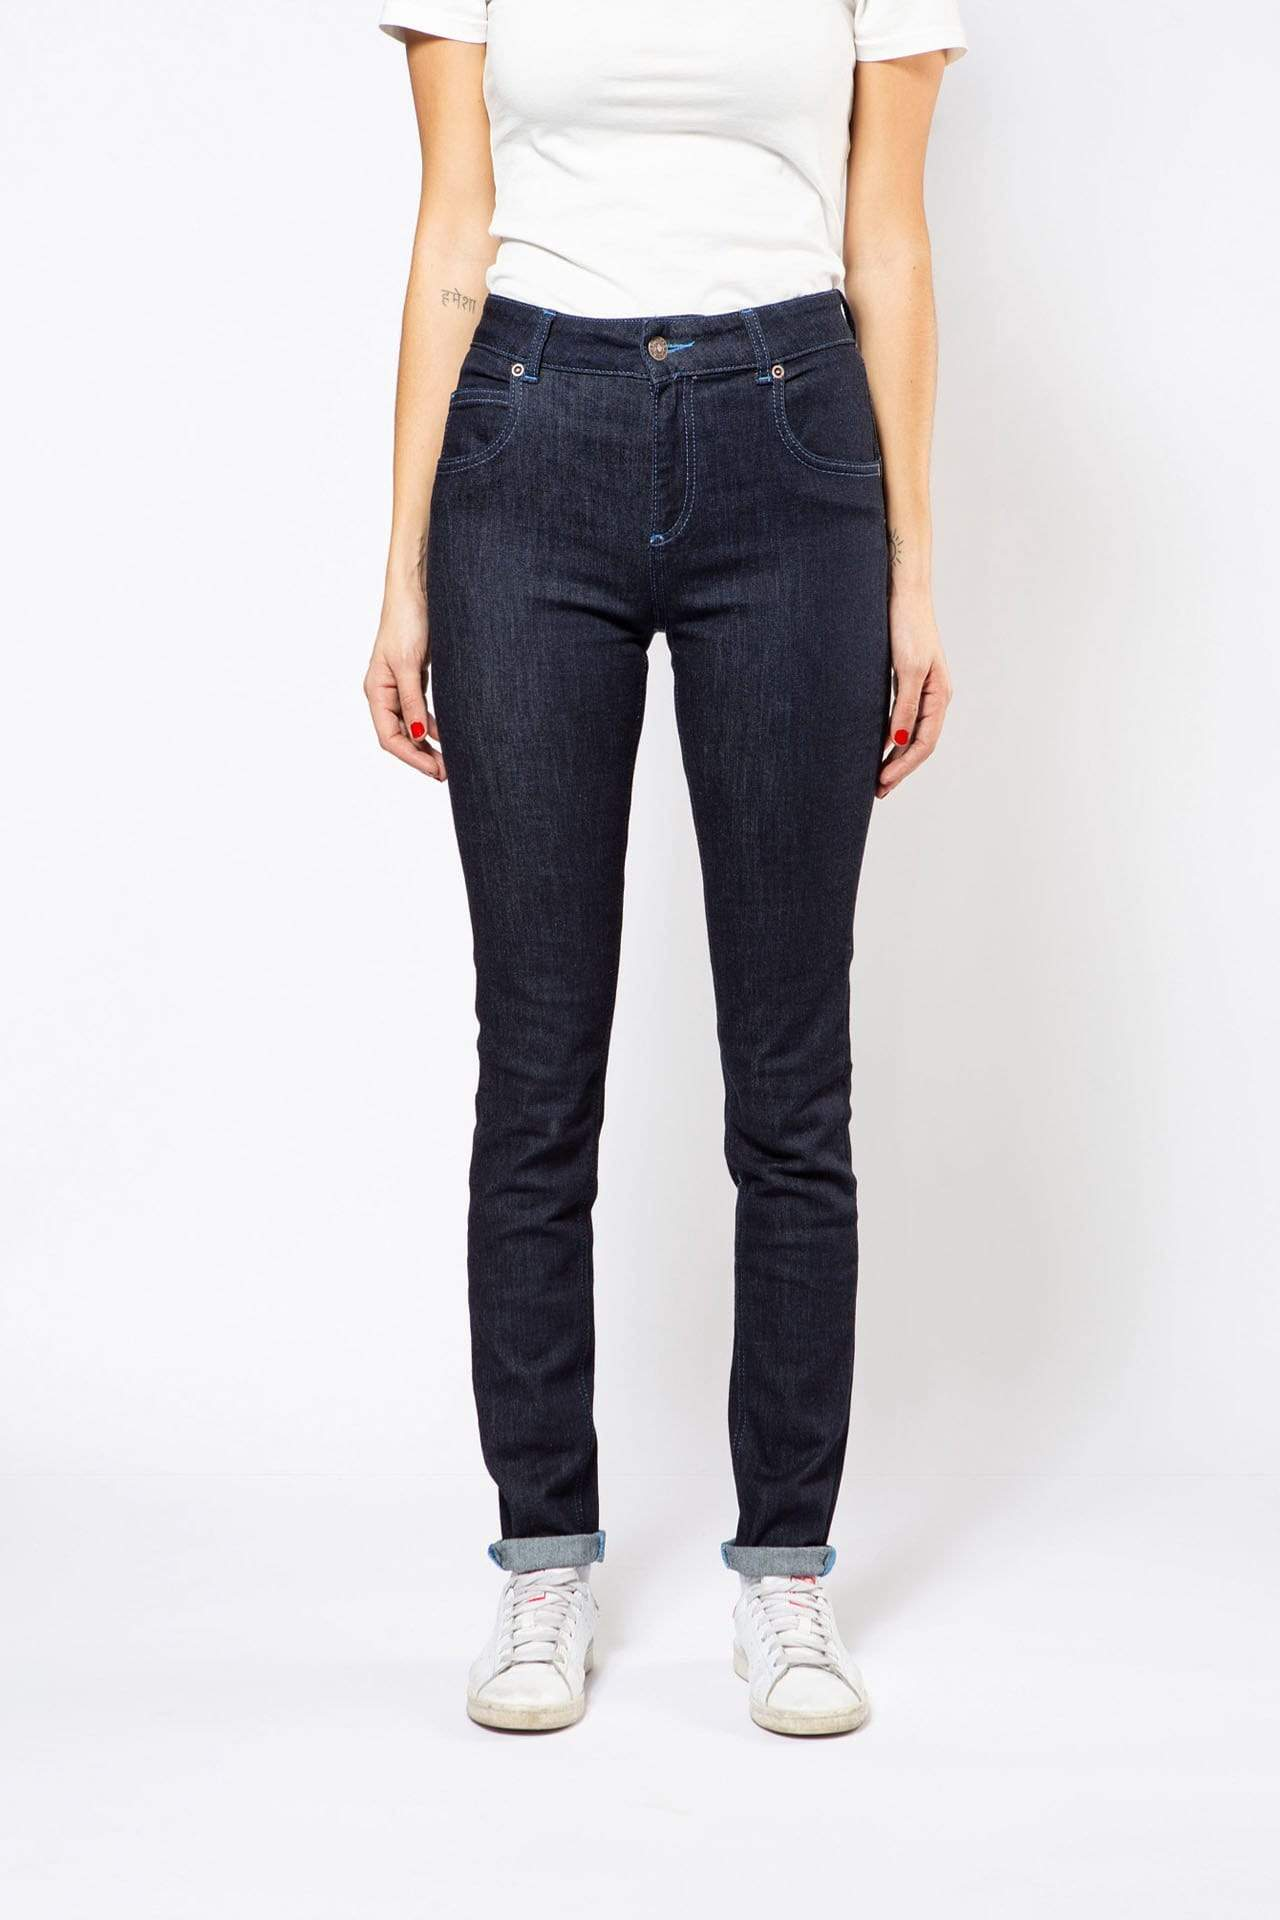 Par.co DENIM Woman Violetta Skinny Jeans sustainable fashion ethical fashion